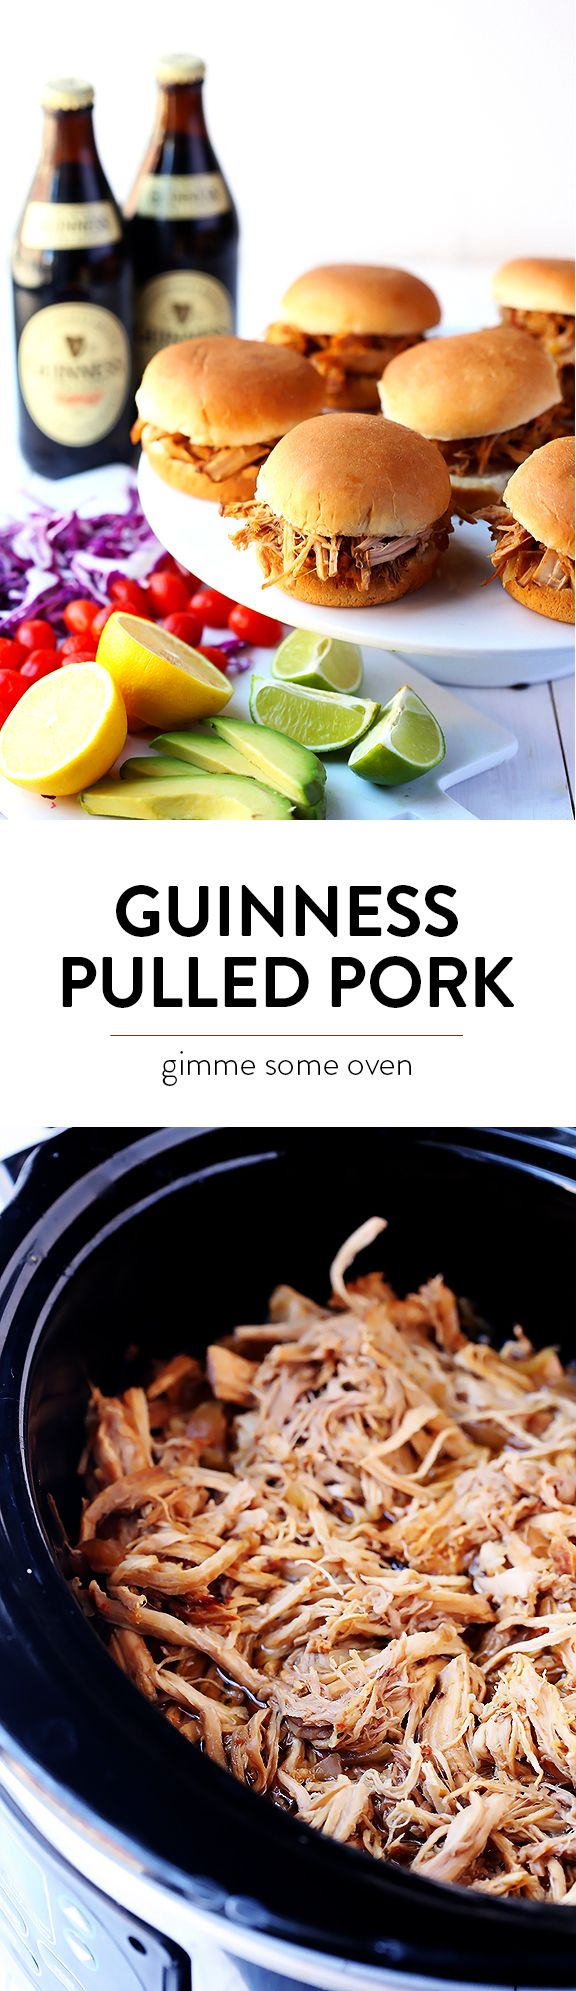 Slow Cooker Guinness Pulled Pork -- super easy to make in the slow cooker, and perfect on sandwiches, or serving on St. Patrick's Day, or whatever sounds good! | gimmesomeoven.com